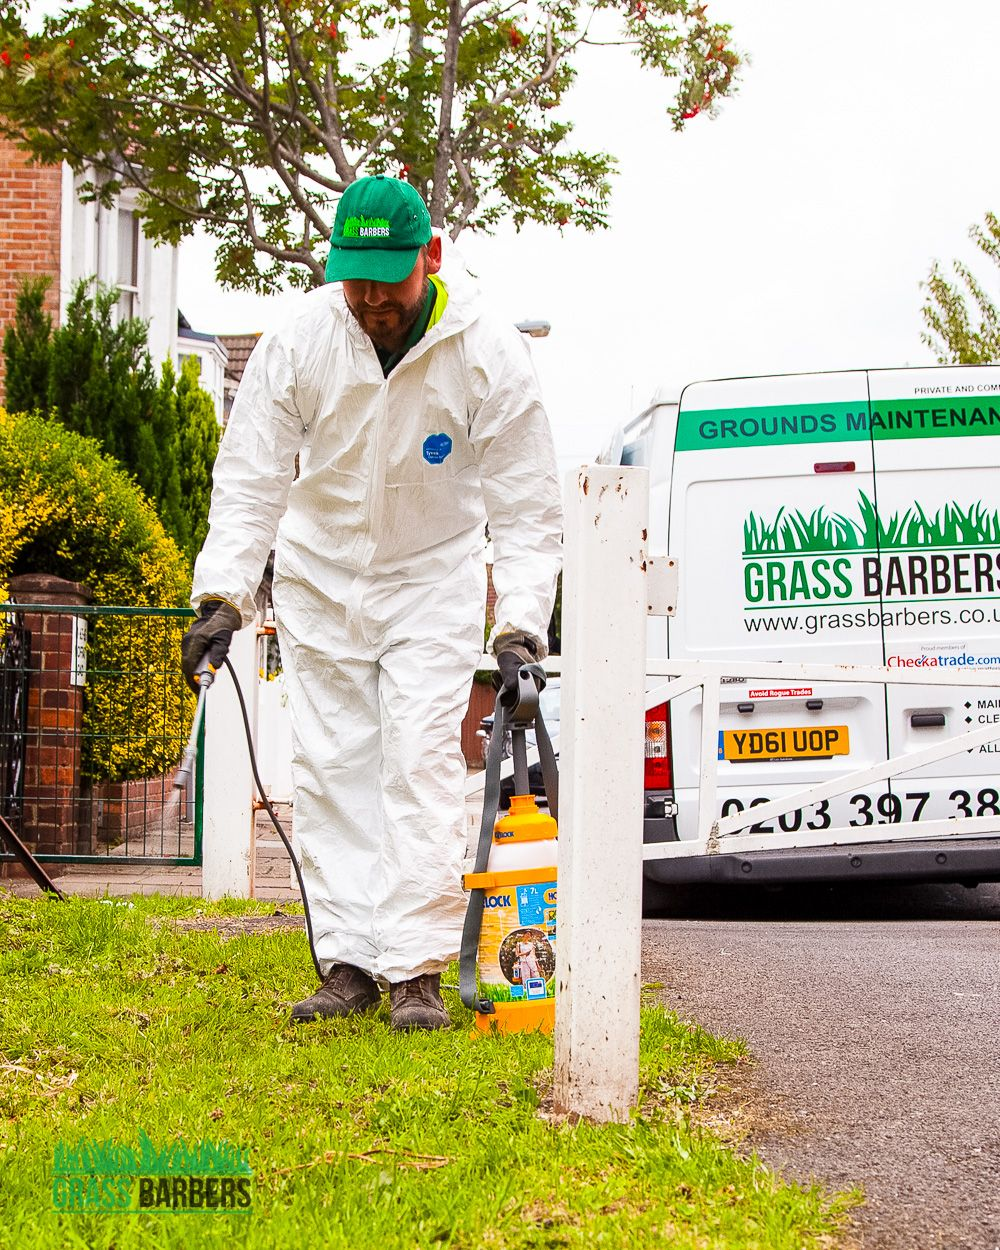 Pin on gardening services in london and surrey